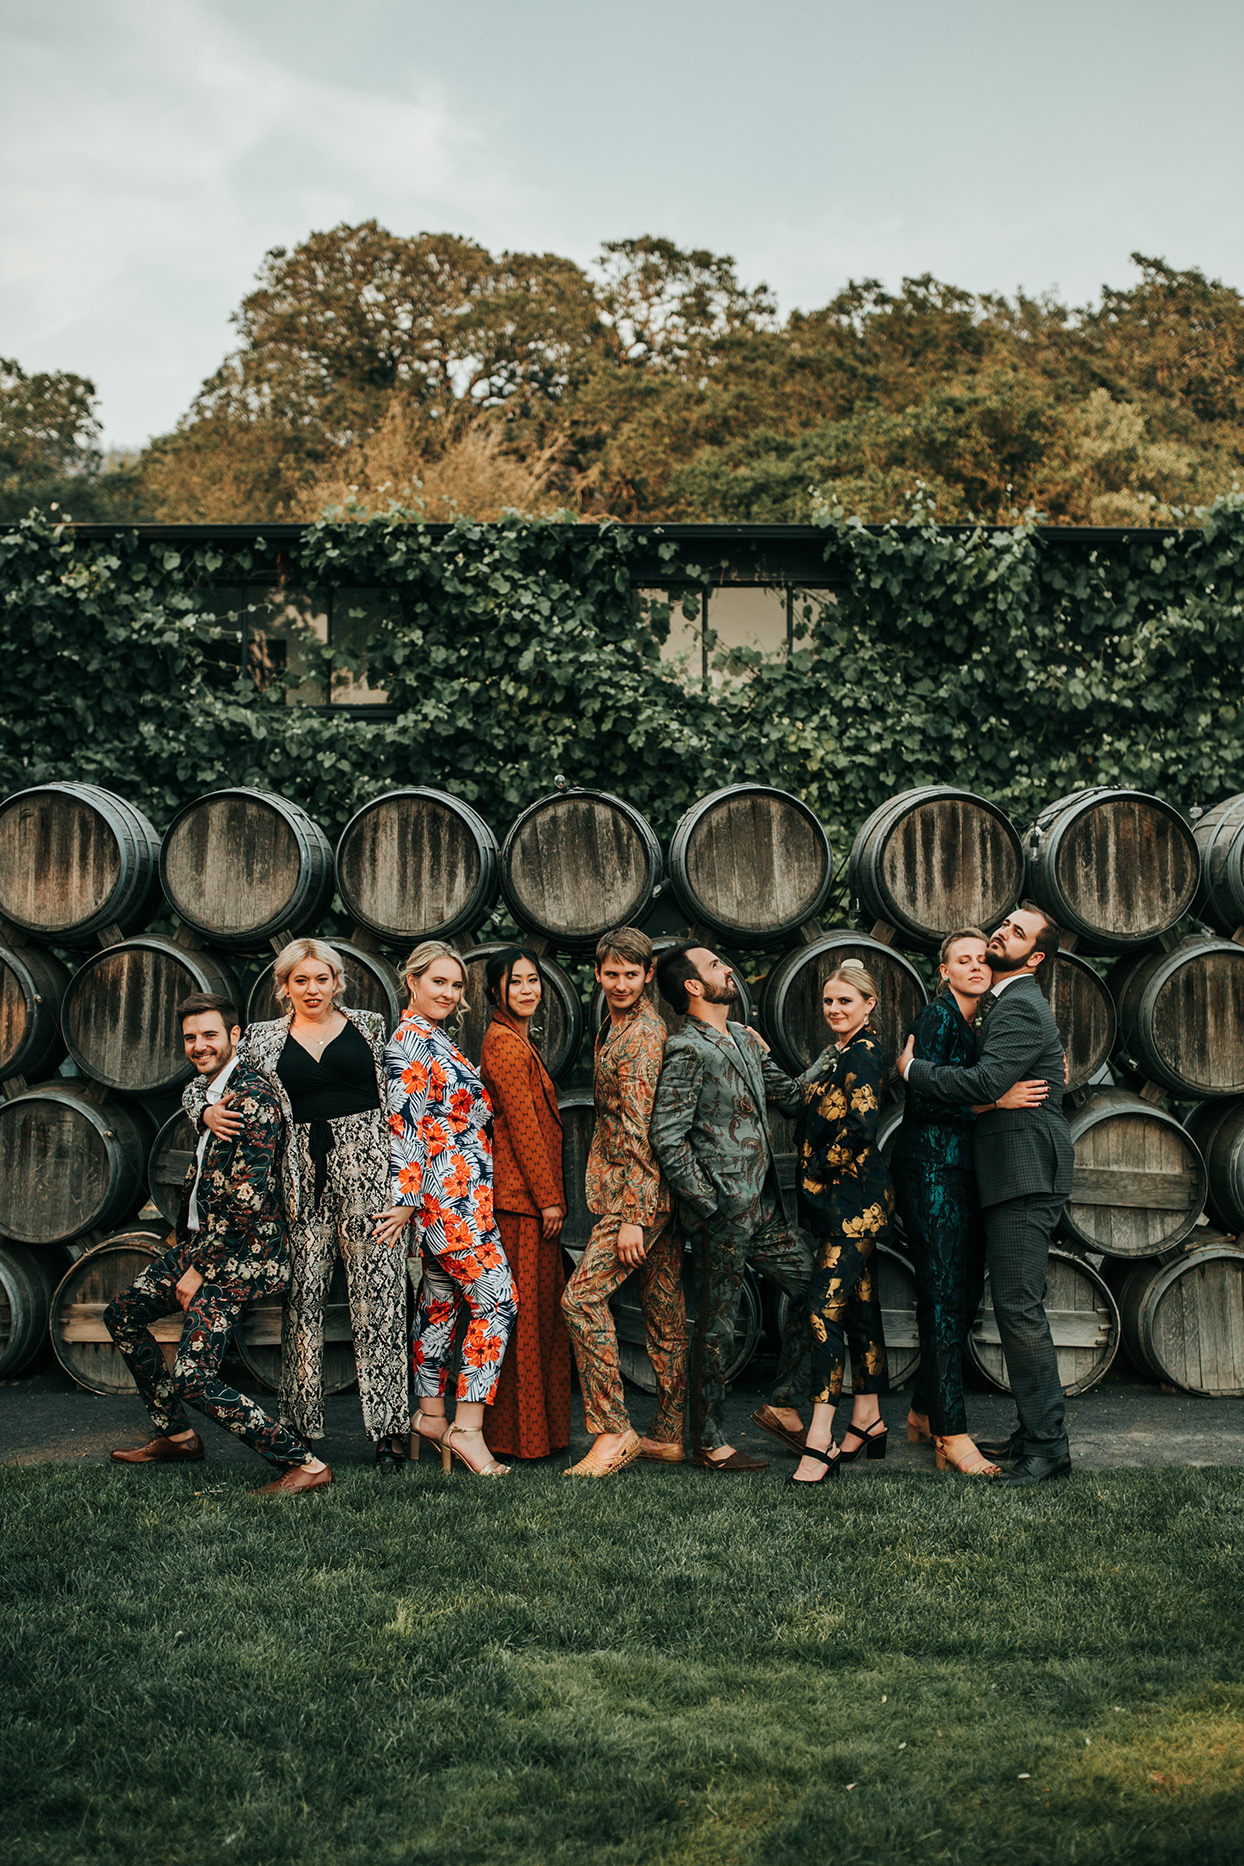 austin alex wedding party in patterned suits